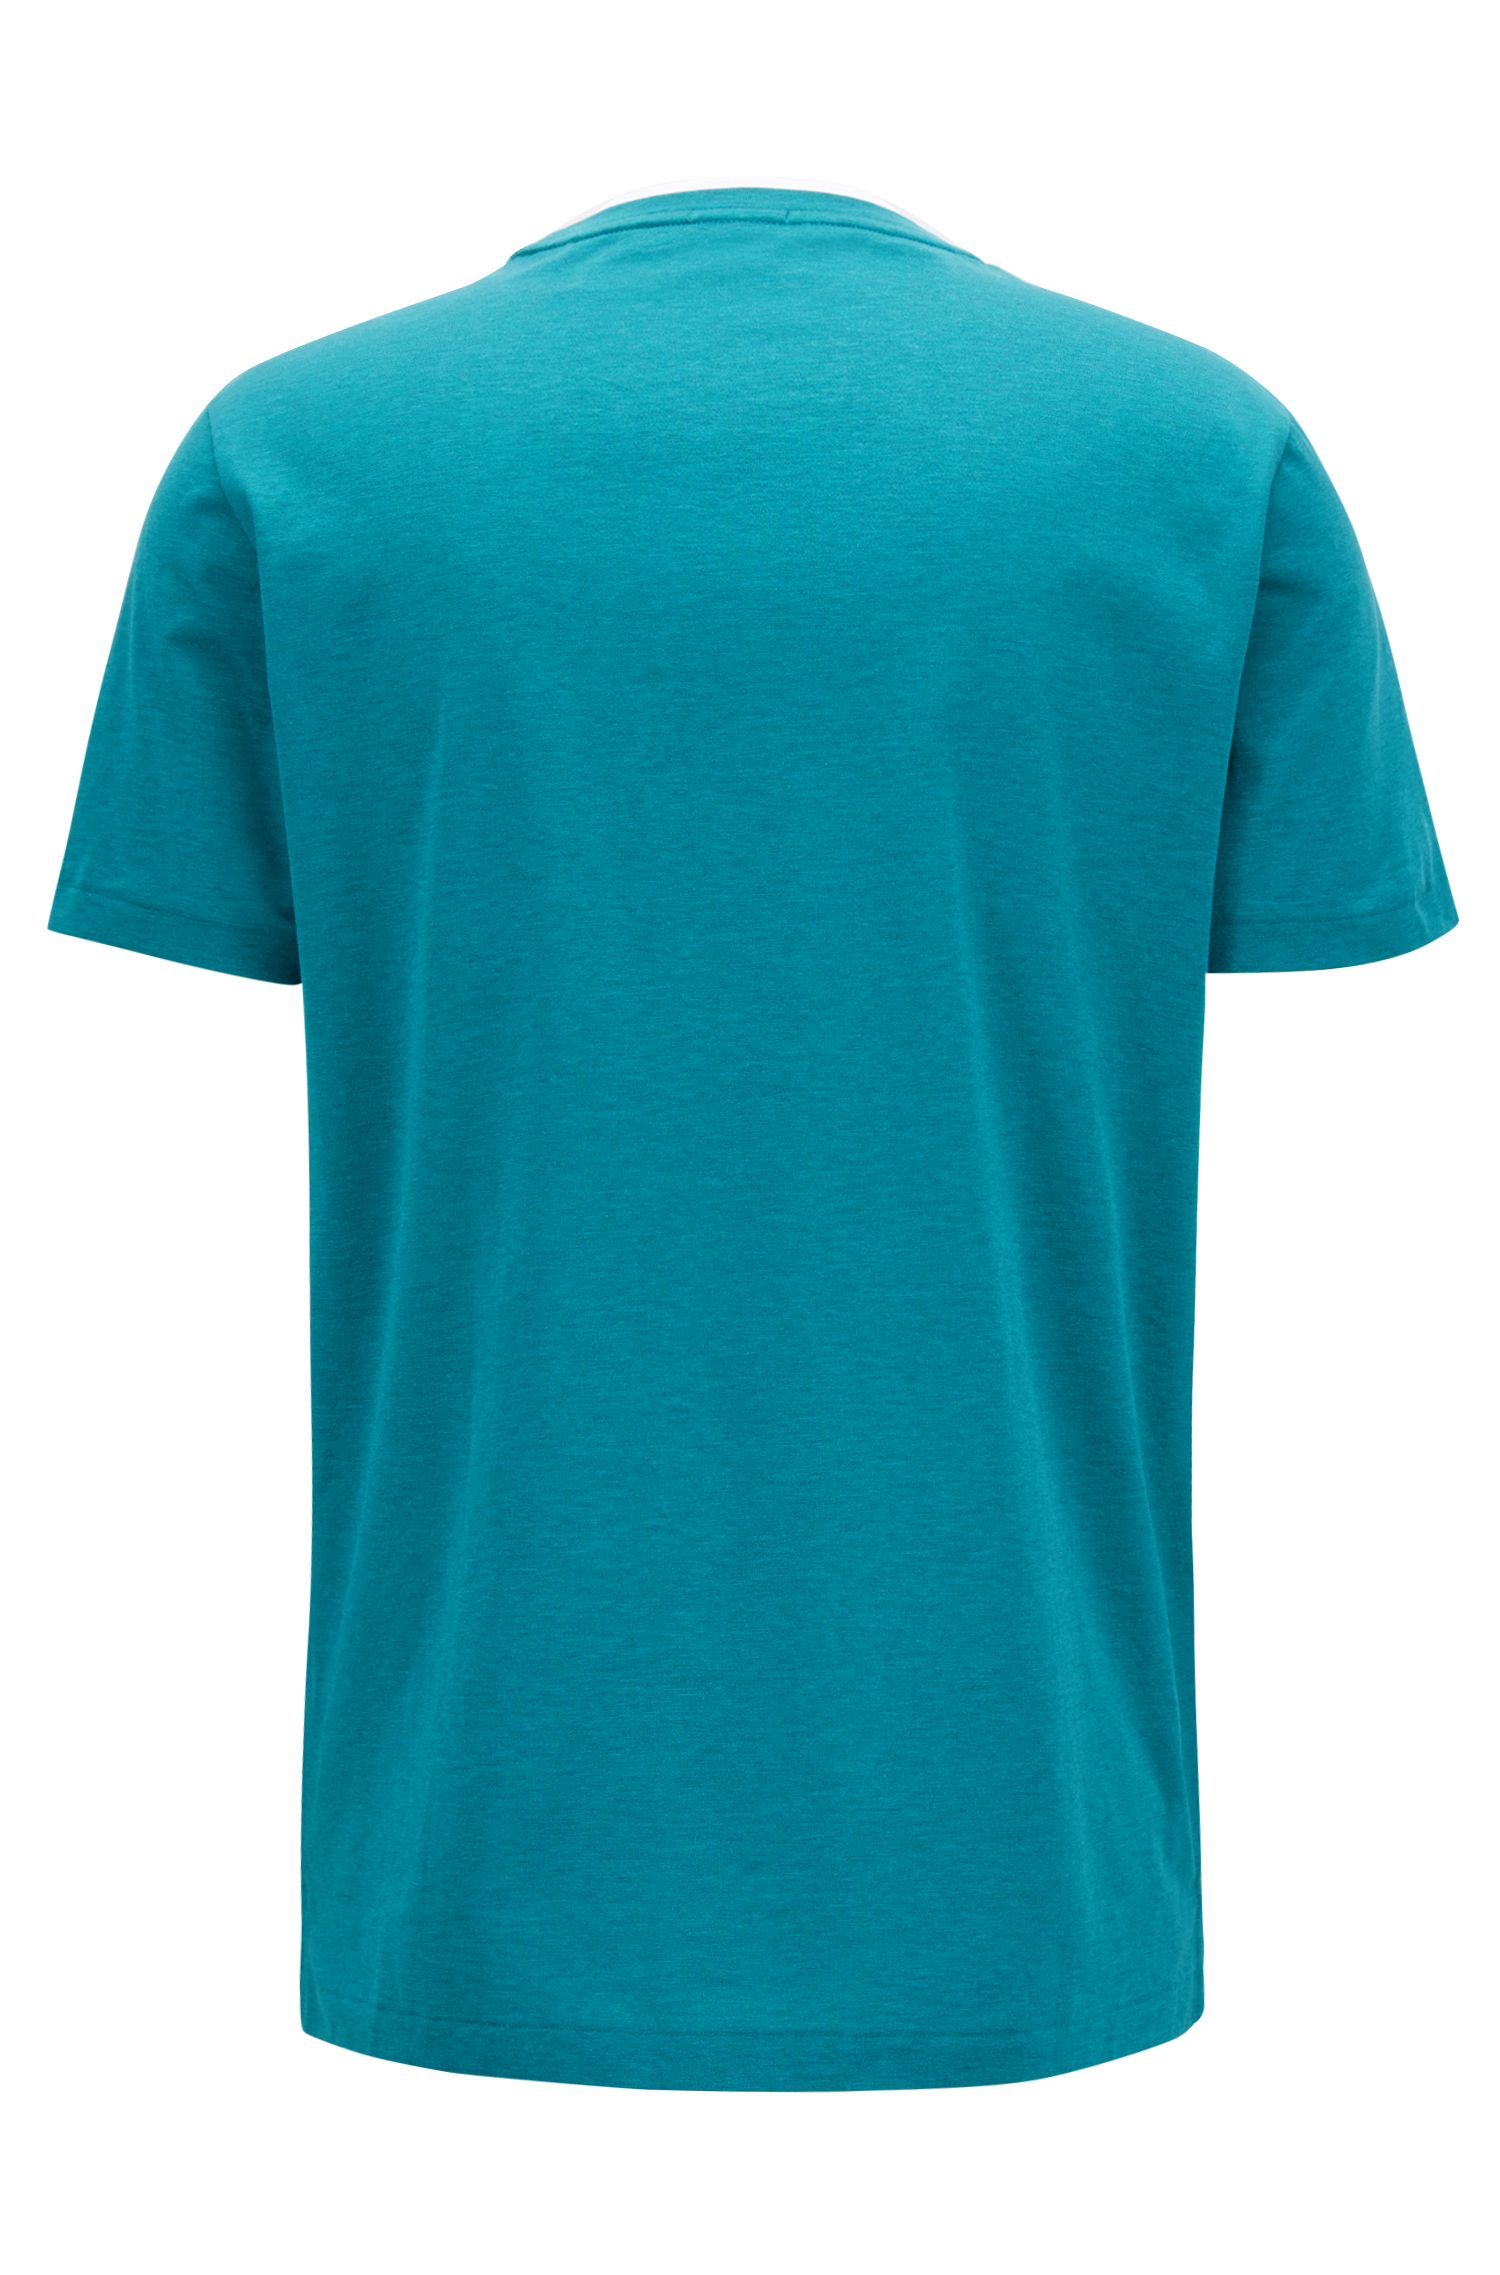 Double-collar T-shirt in mercerized single-jersey cotton, Green